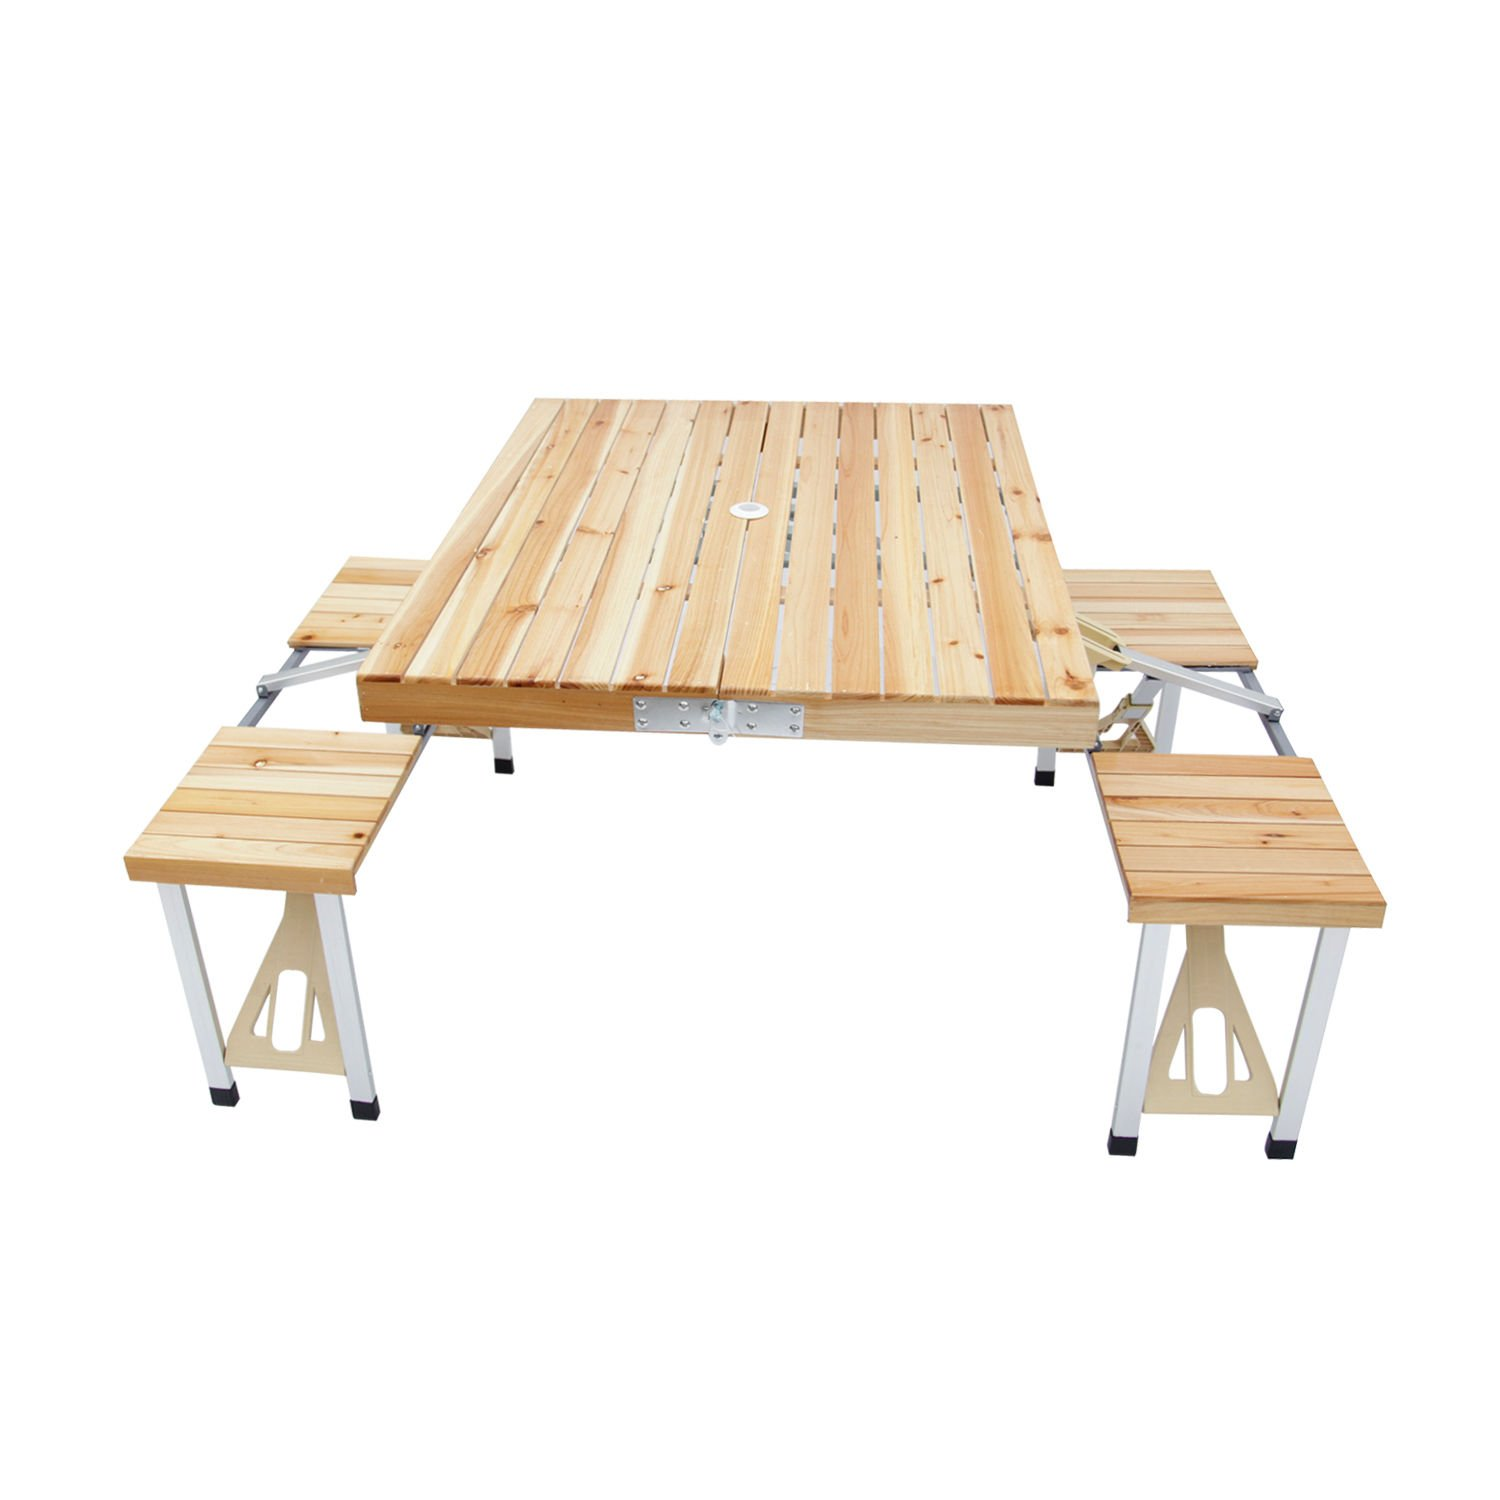 Wooden Folding Table Set Portable Party Camping Picnic Indoor Outdoor, 4 seats + FREE E-Book